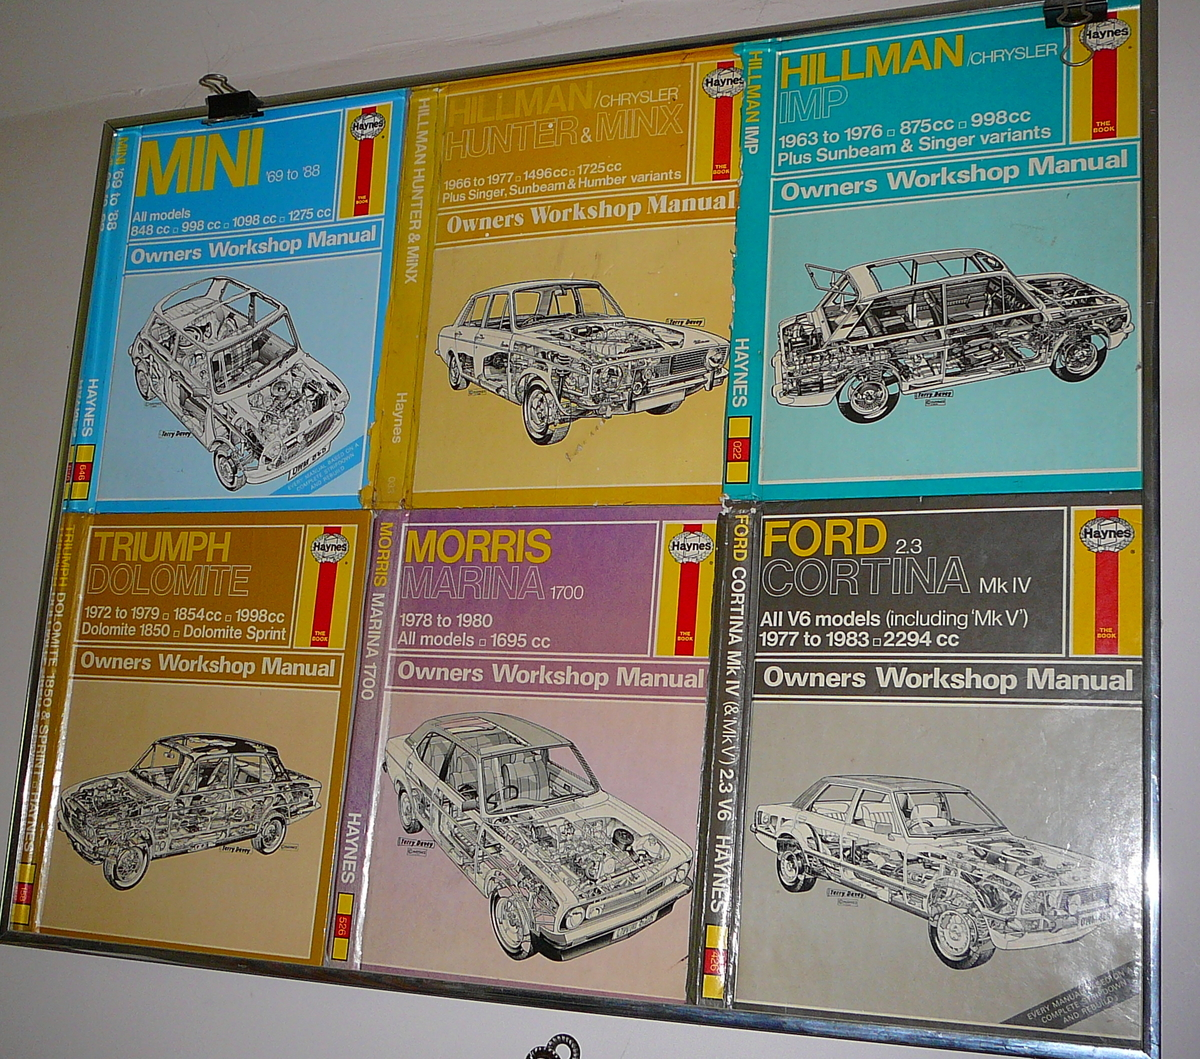 Haynes manuals car repairs servicing maintenance